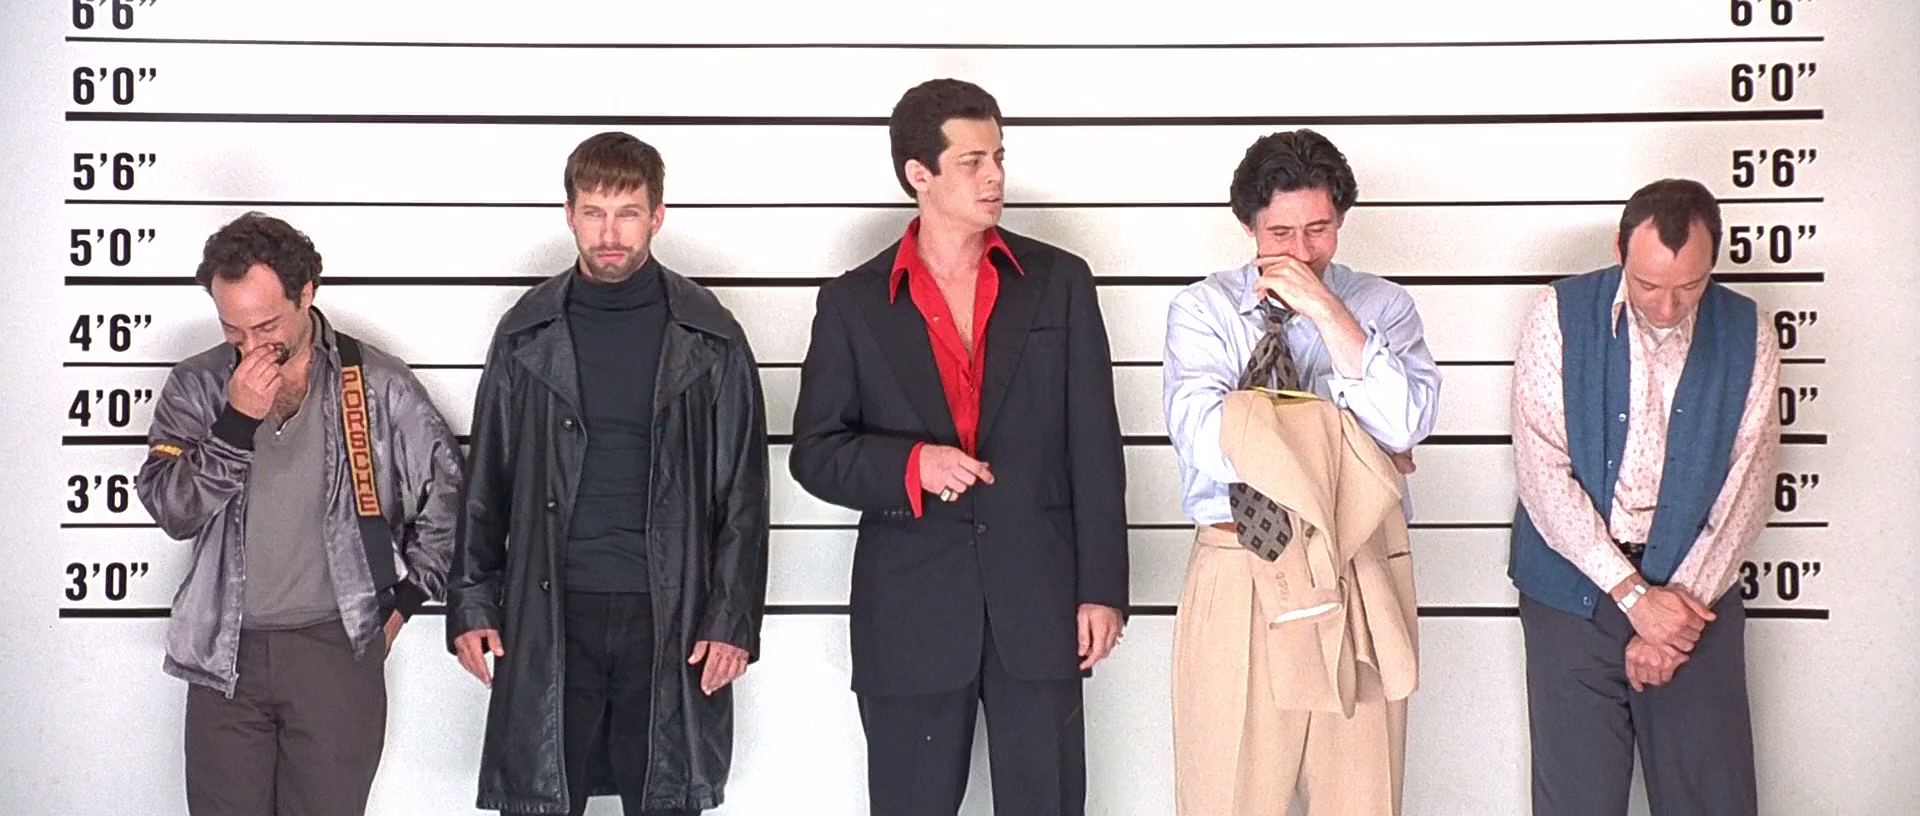 HQ The Usual Suspects Wallpapers | File 1549.81Kb